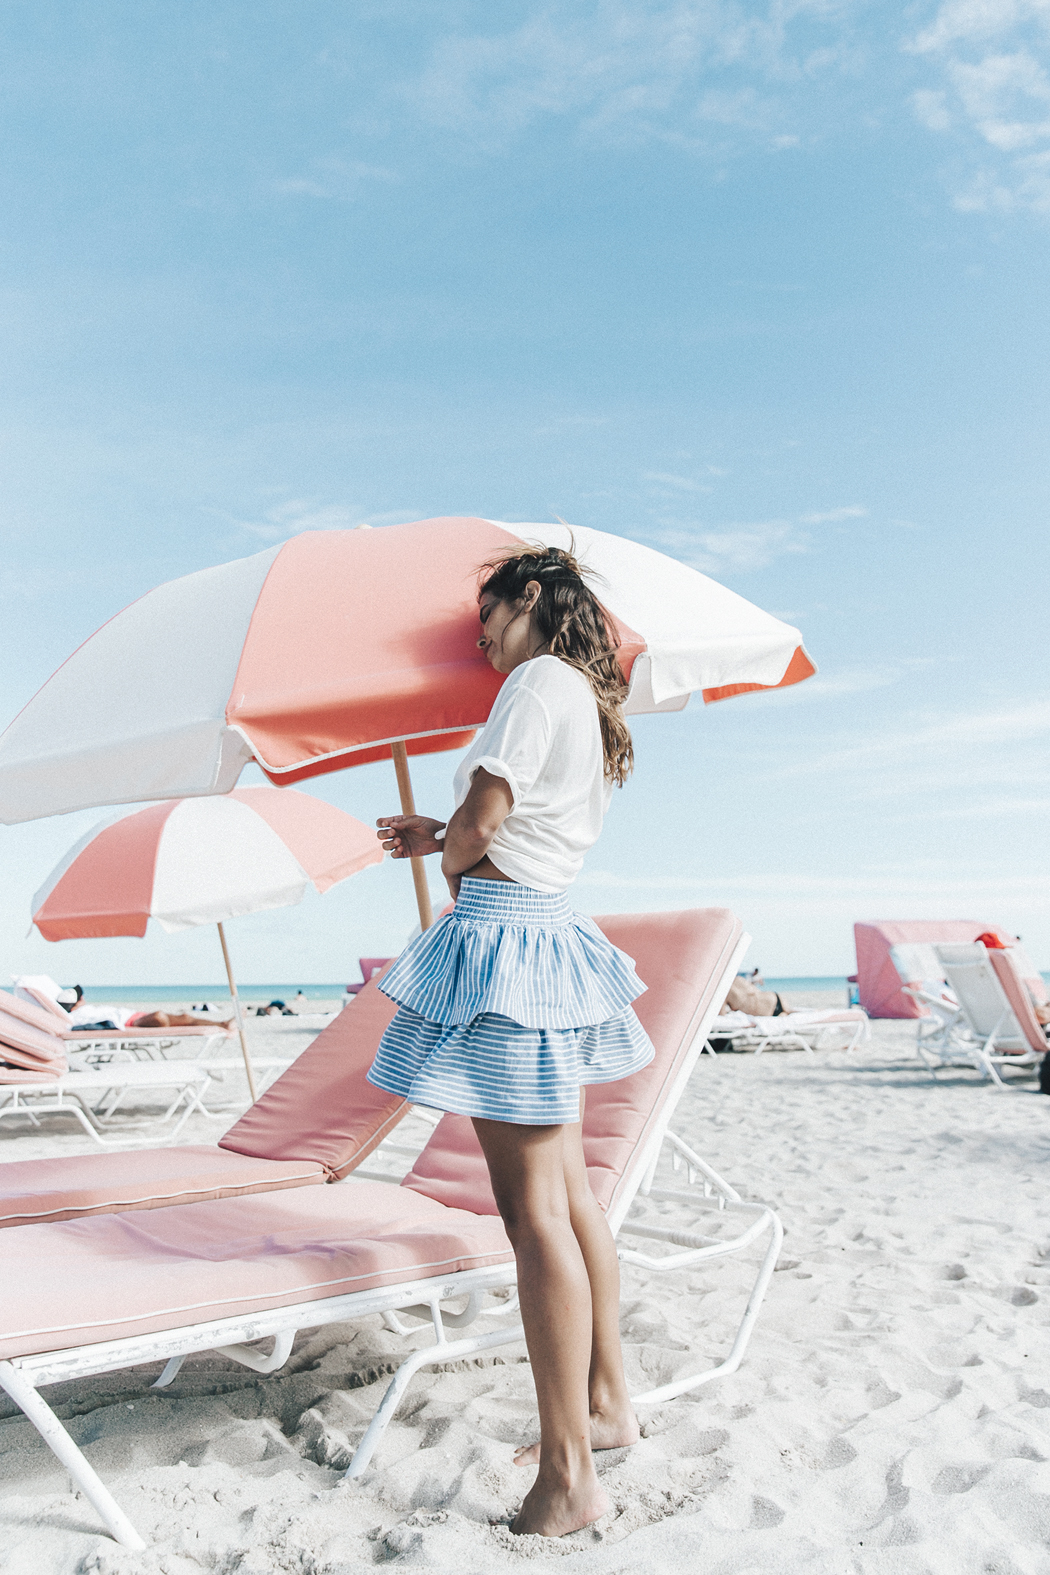 Miami-Striped_Skirt-Knotted_Top-Beach-South_Beach-Candy_Colors-Collage_On_The_Road-Street_Style-OUtfit-199